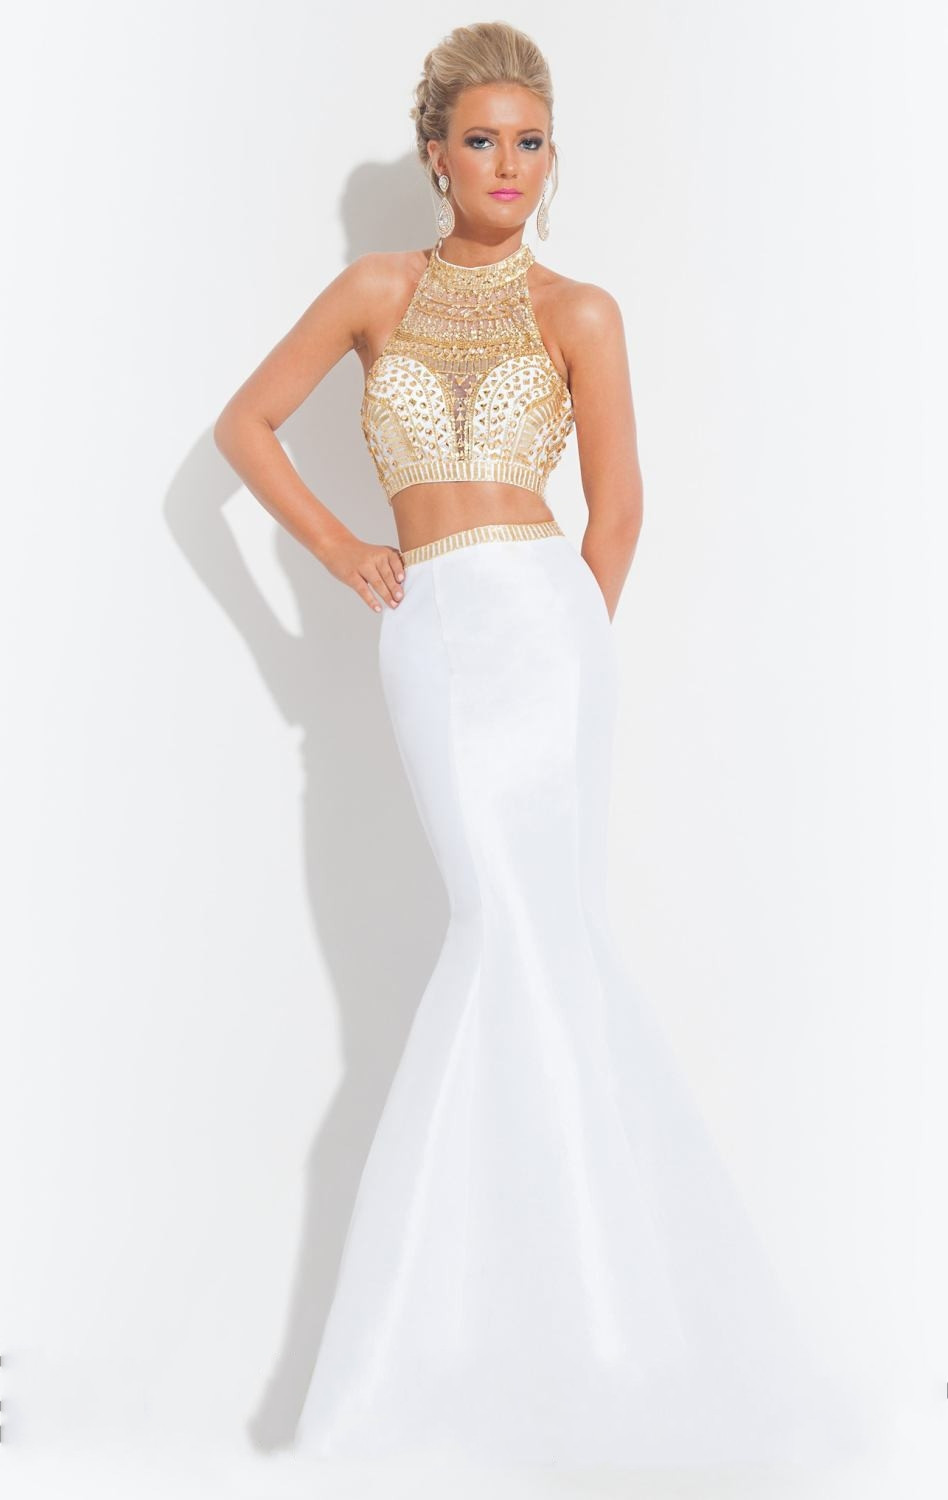 Wedding Gold And White Prom Dresses online buy wholesale long gold and white prom dress from china 2016 hot crystal sparkly two piece dresses mermaid abendkleider 2 piece